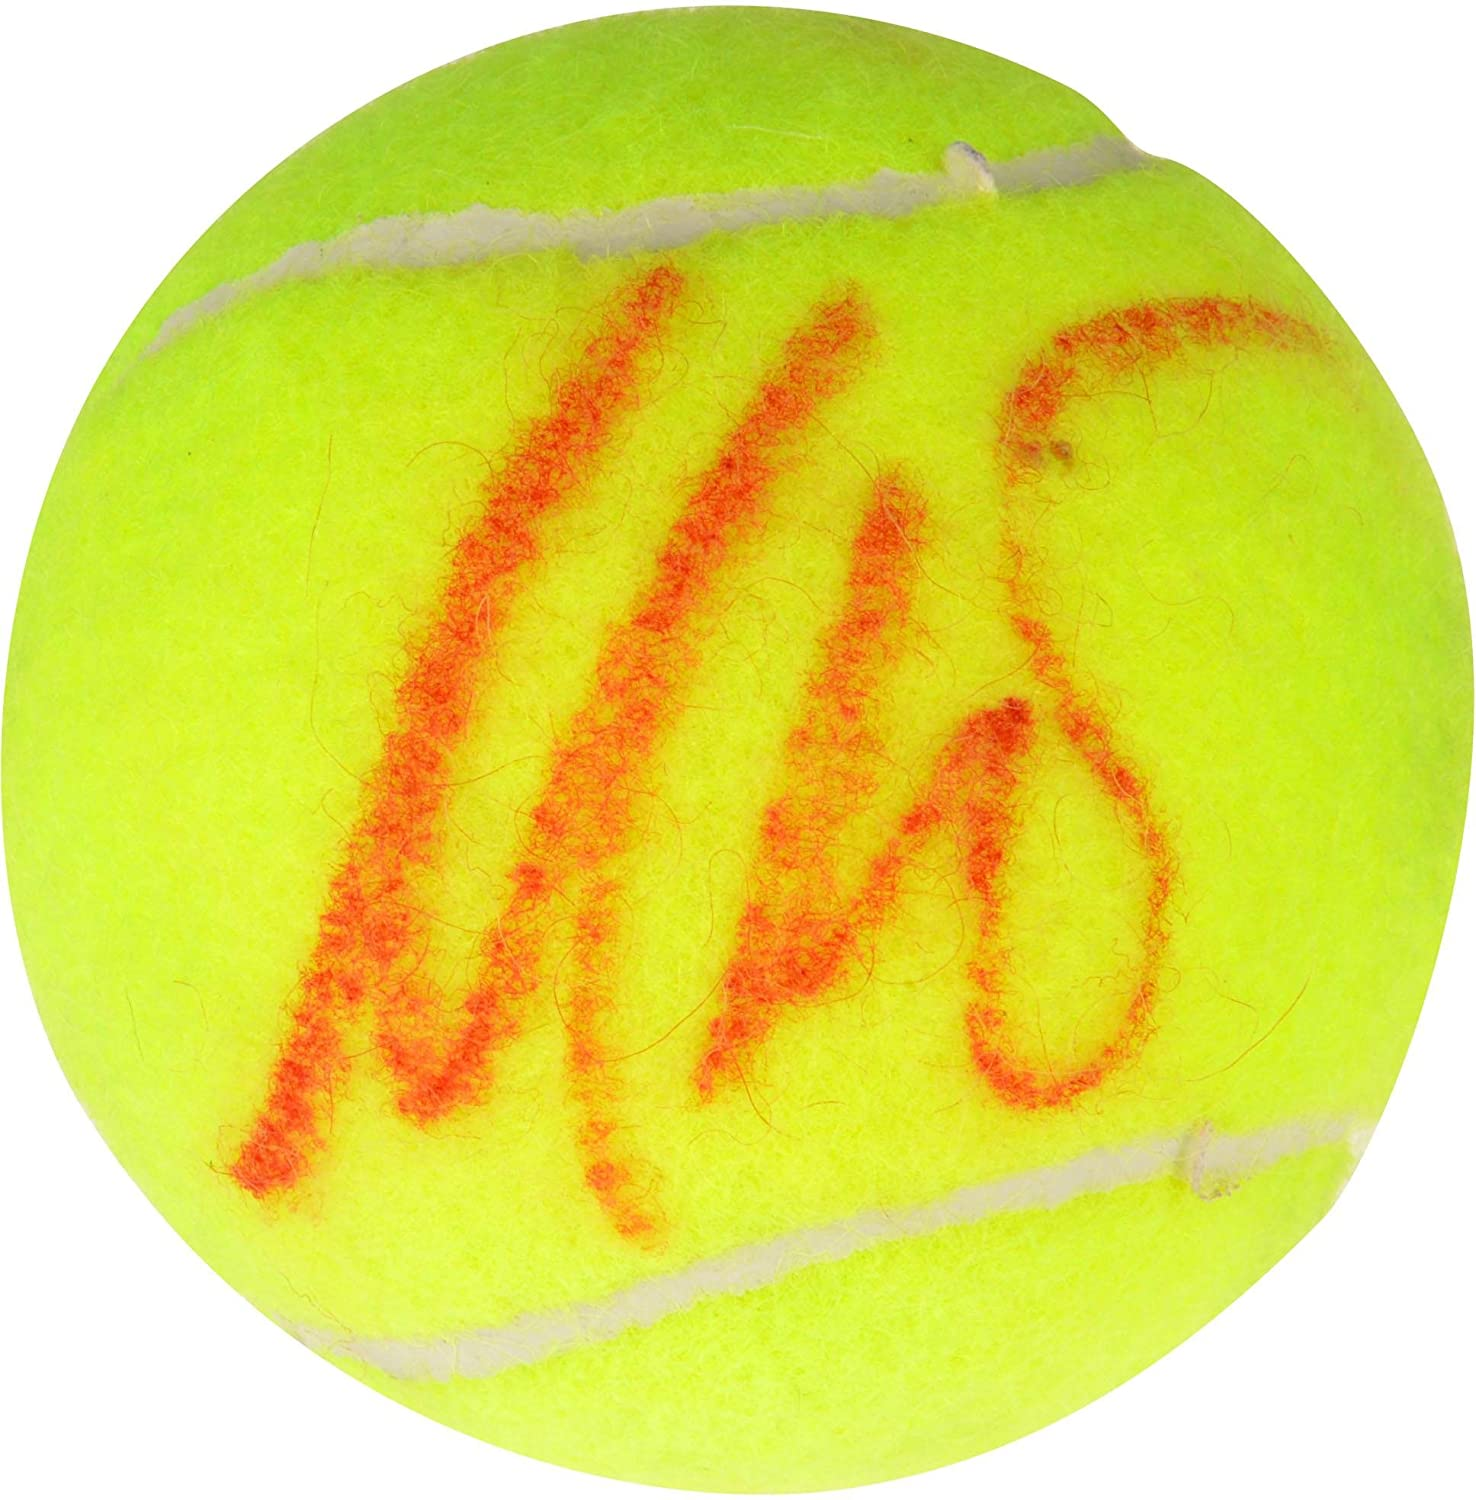 Maria Sharapova Autographed Penn Tennis Ball - Signed in Red Ink - Fanatics Authentic Certified - Autographed Tennis Balls